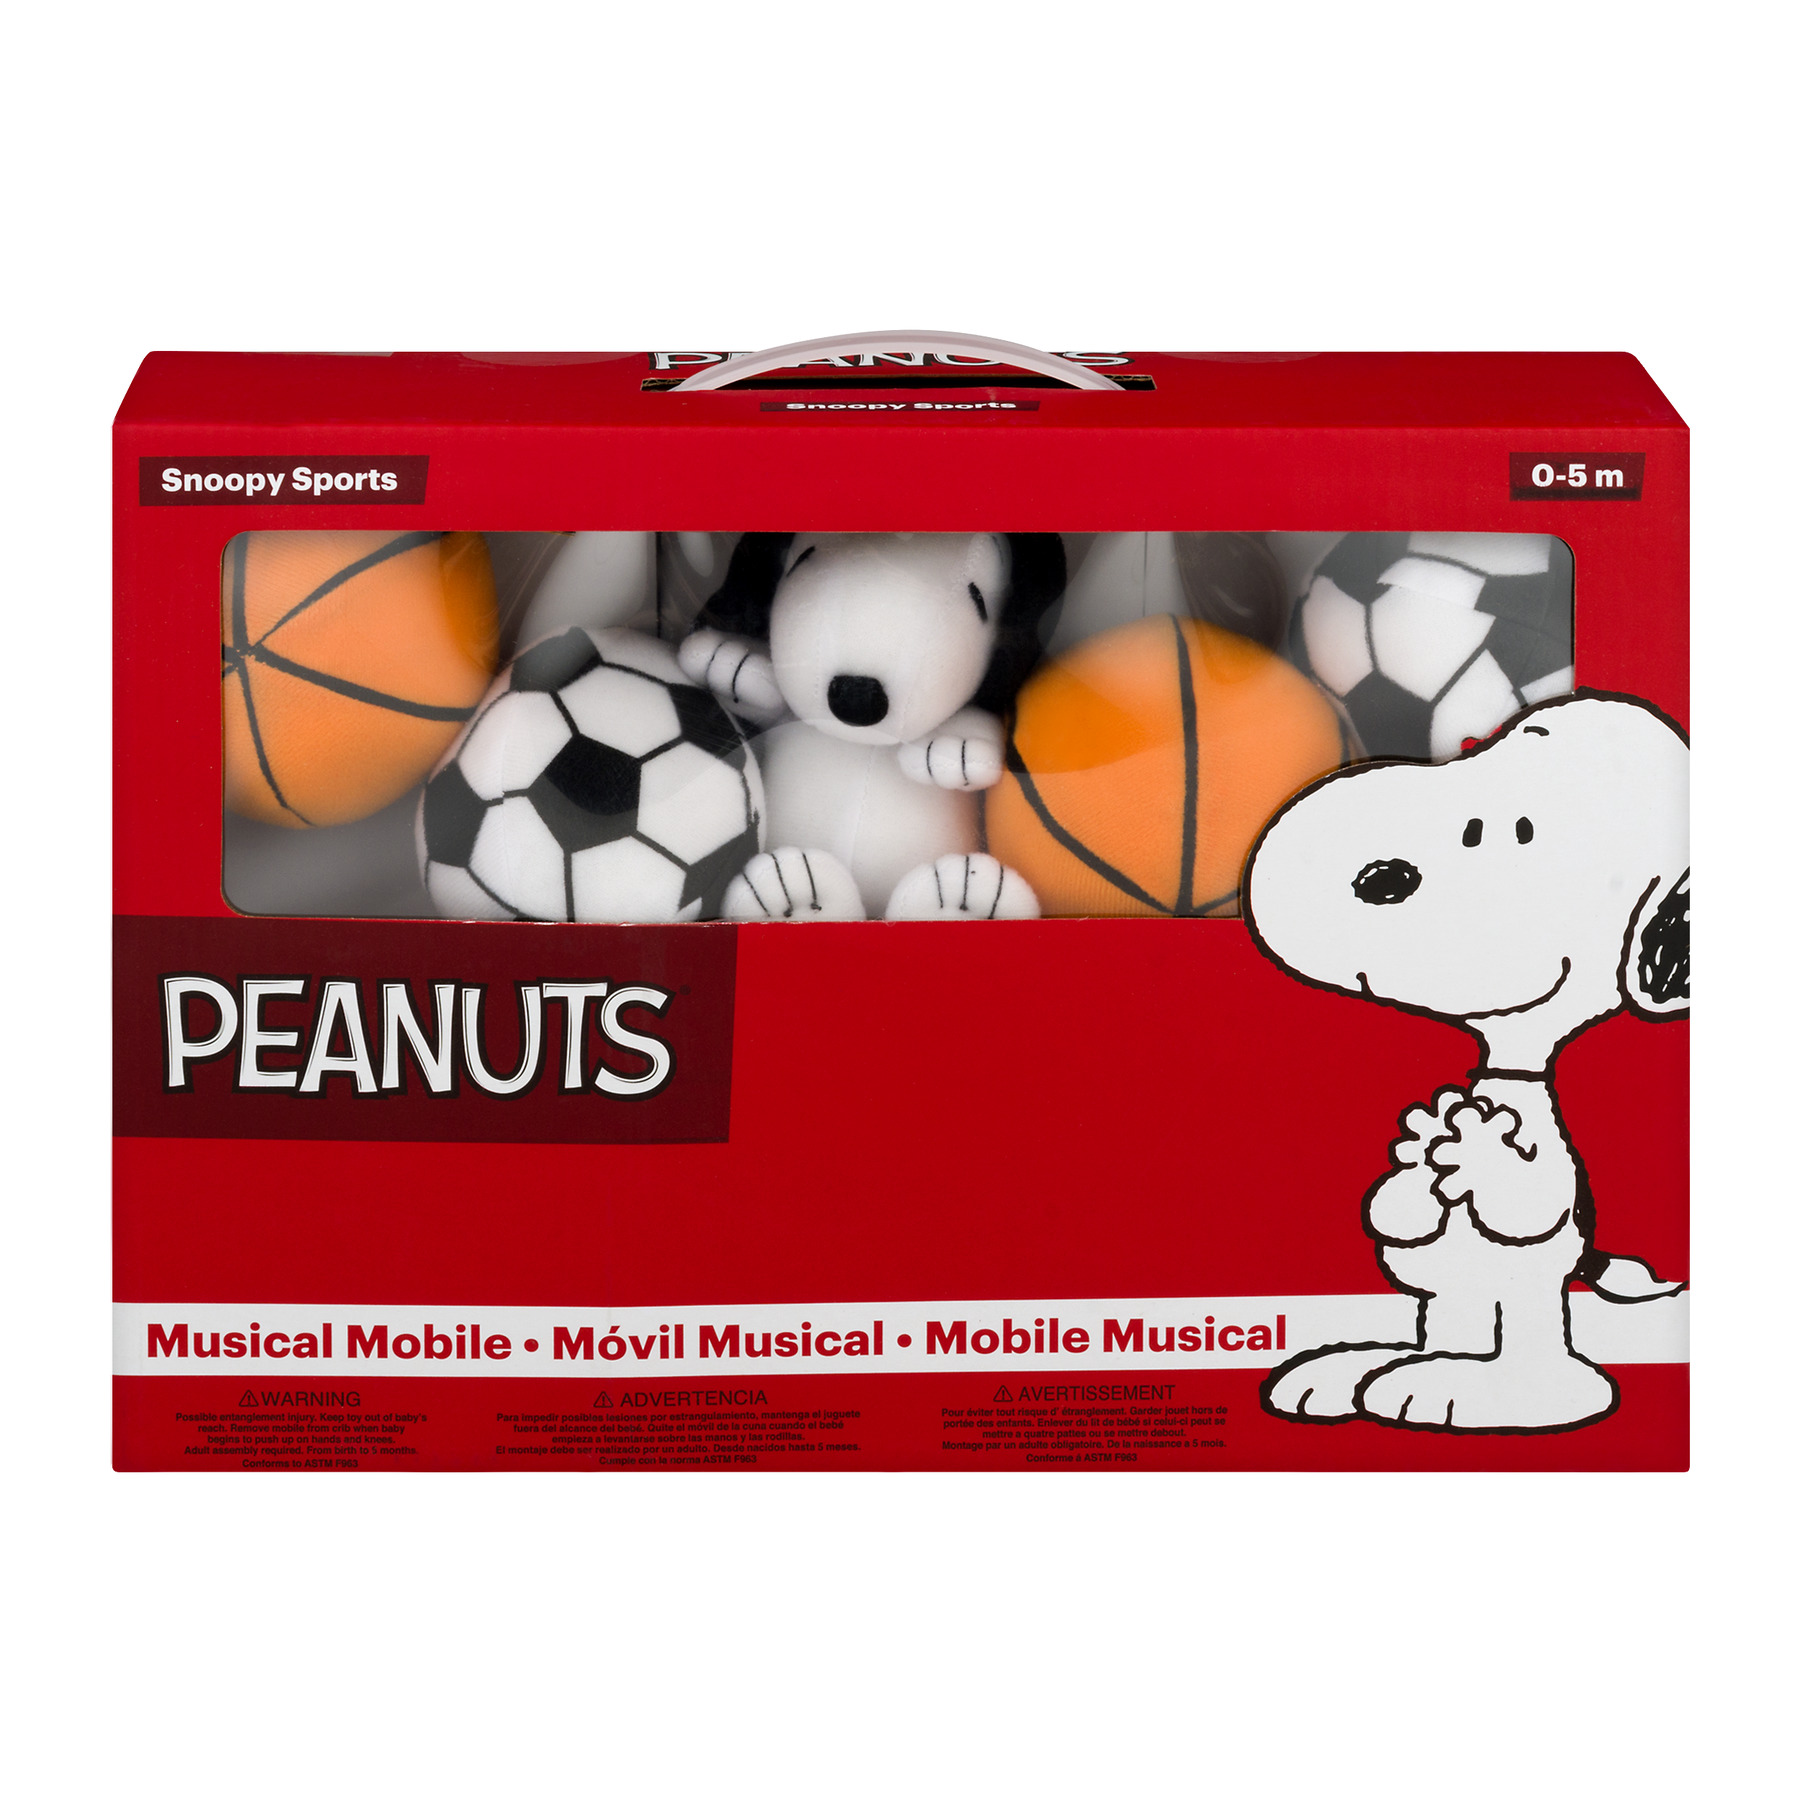 Peanuts Lamp Snoopy Sports Musical Mobile 0, 1.0 CT by Bedtime Originals